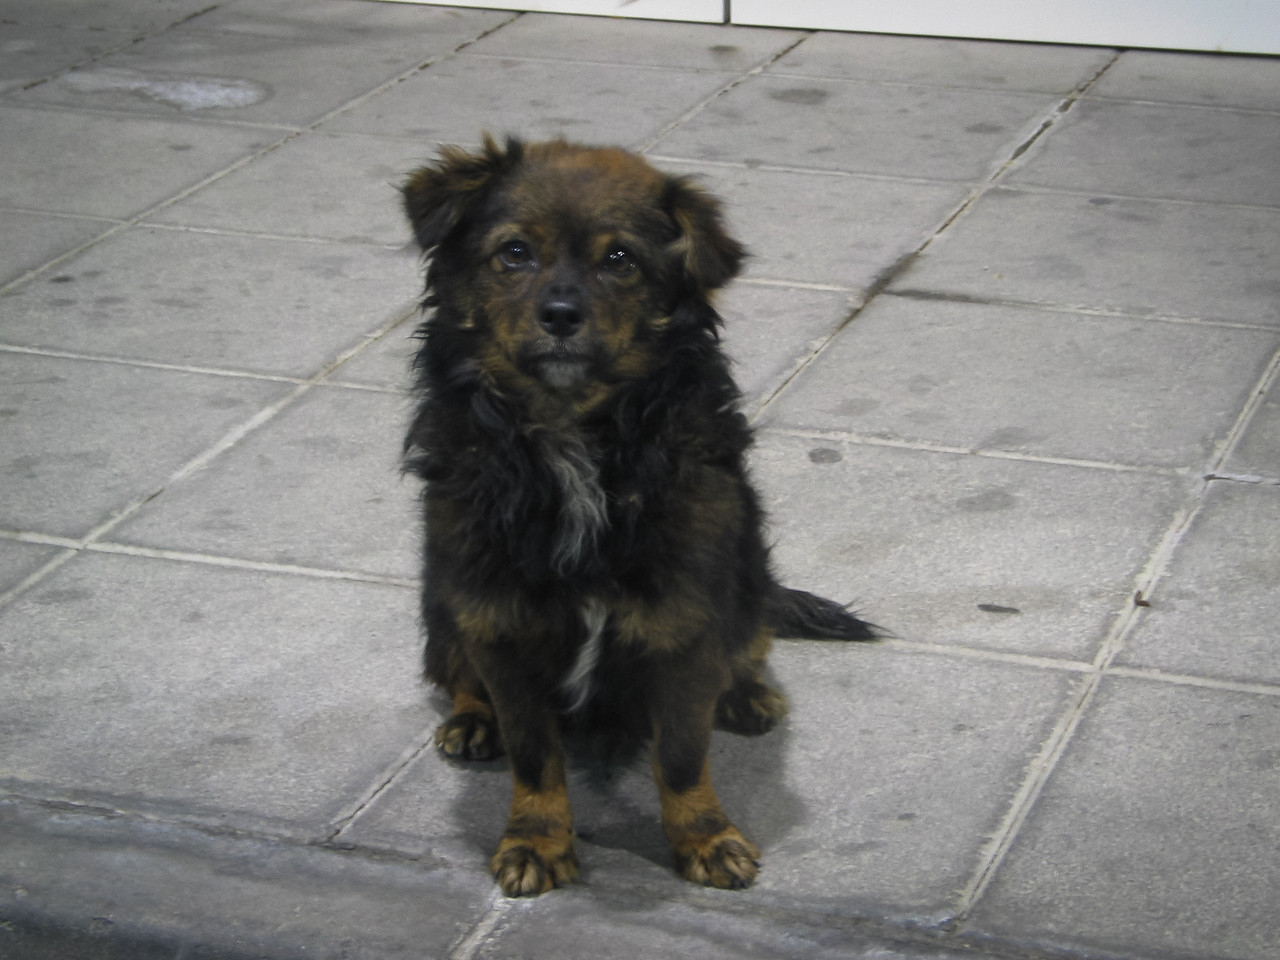 A sweet stray dog at a gas station swallowed sandwich we gave in a fraction of a second (she must have been very hungry) - Granada, Spain, December 2002 (processed and added in 2010)